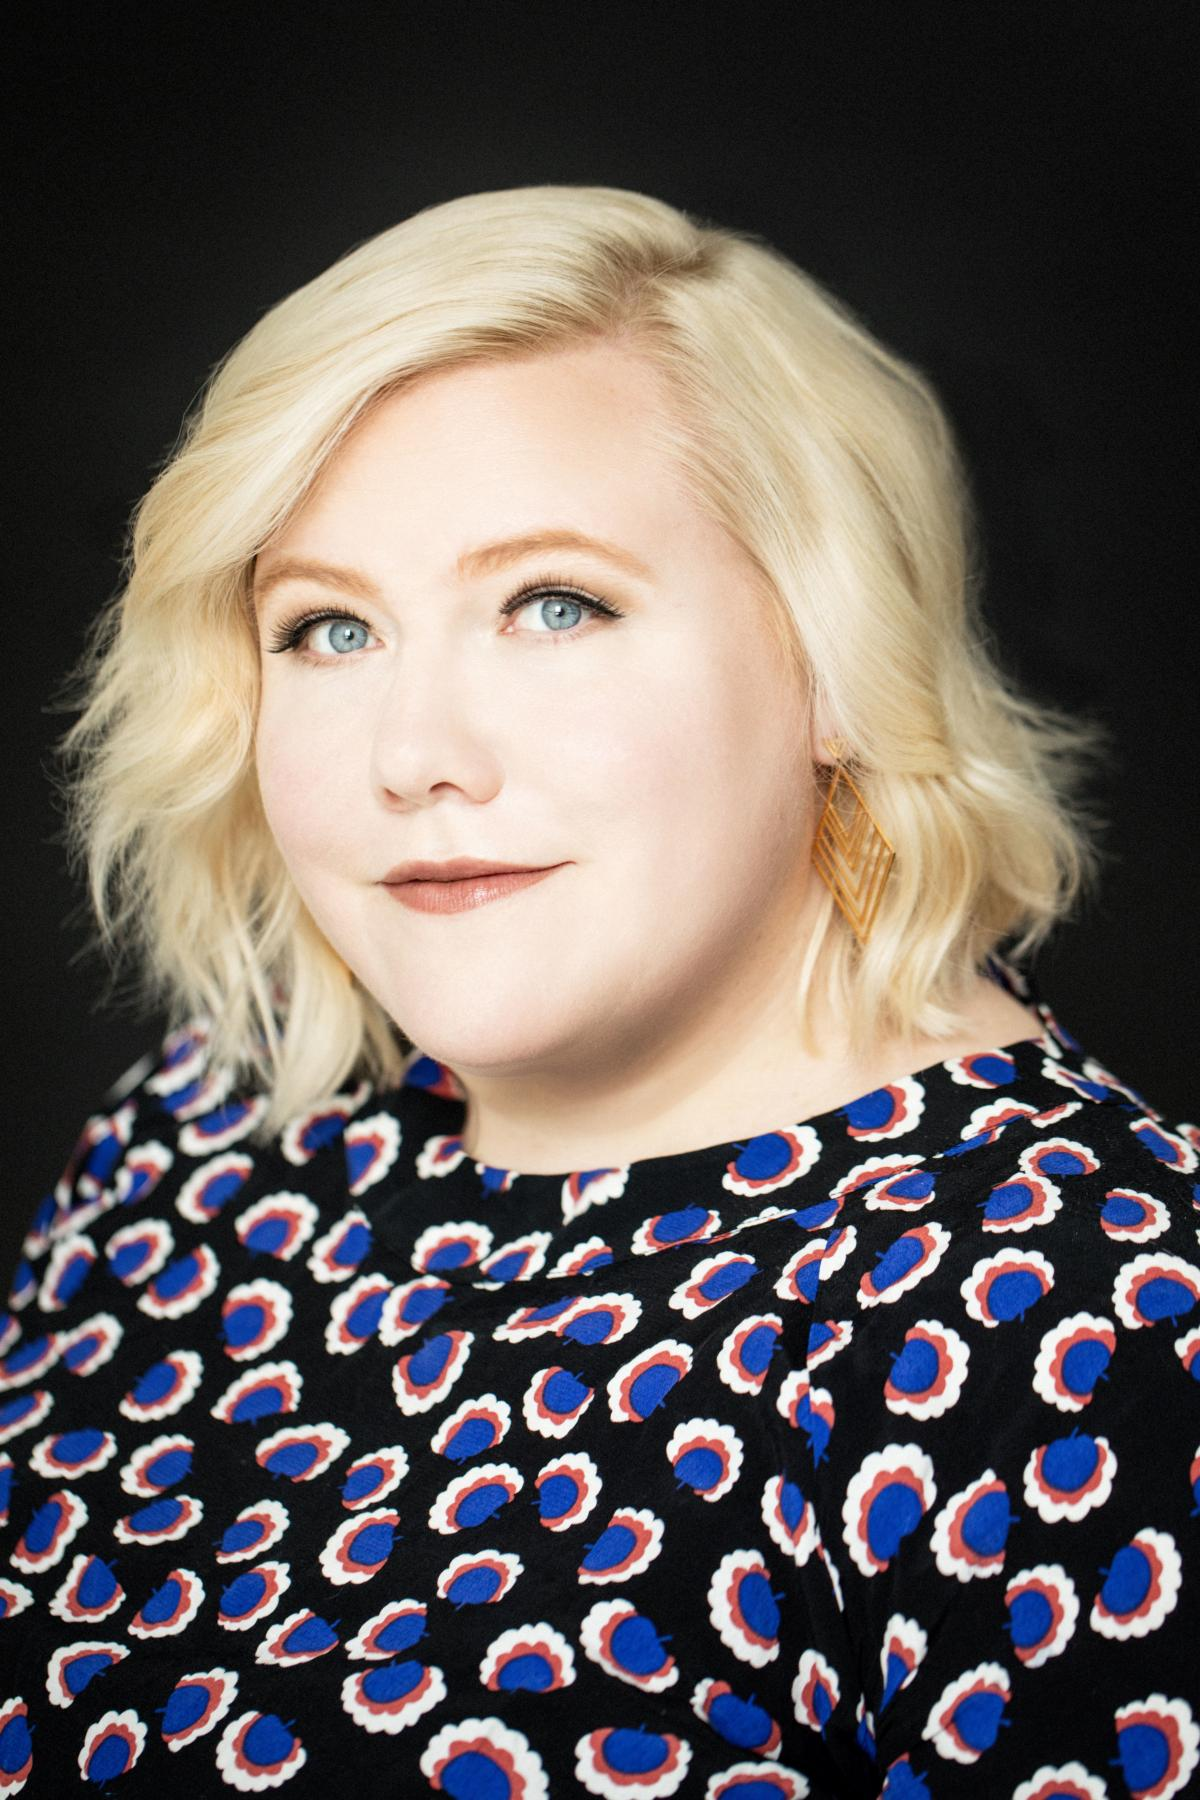 """Shrill executive producer Lindy West enjoyed making a fictionalized version of her life: """"You can work out all your grudges and your resentments against everyone you've ever met, except with this plausible deniability because it's fictional,"""" she says."""